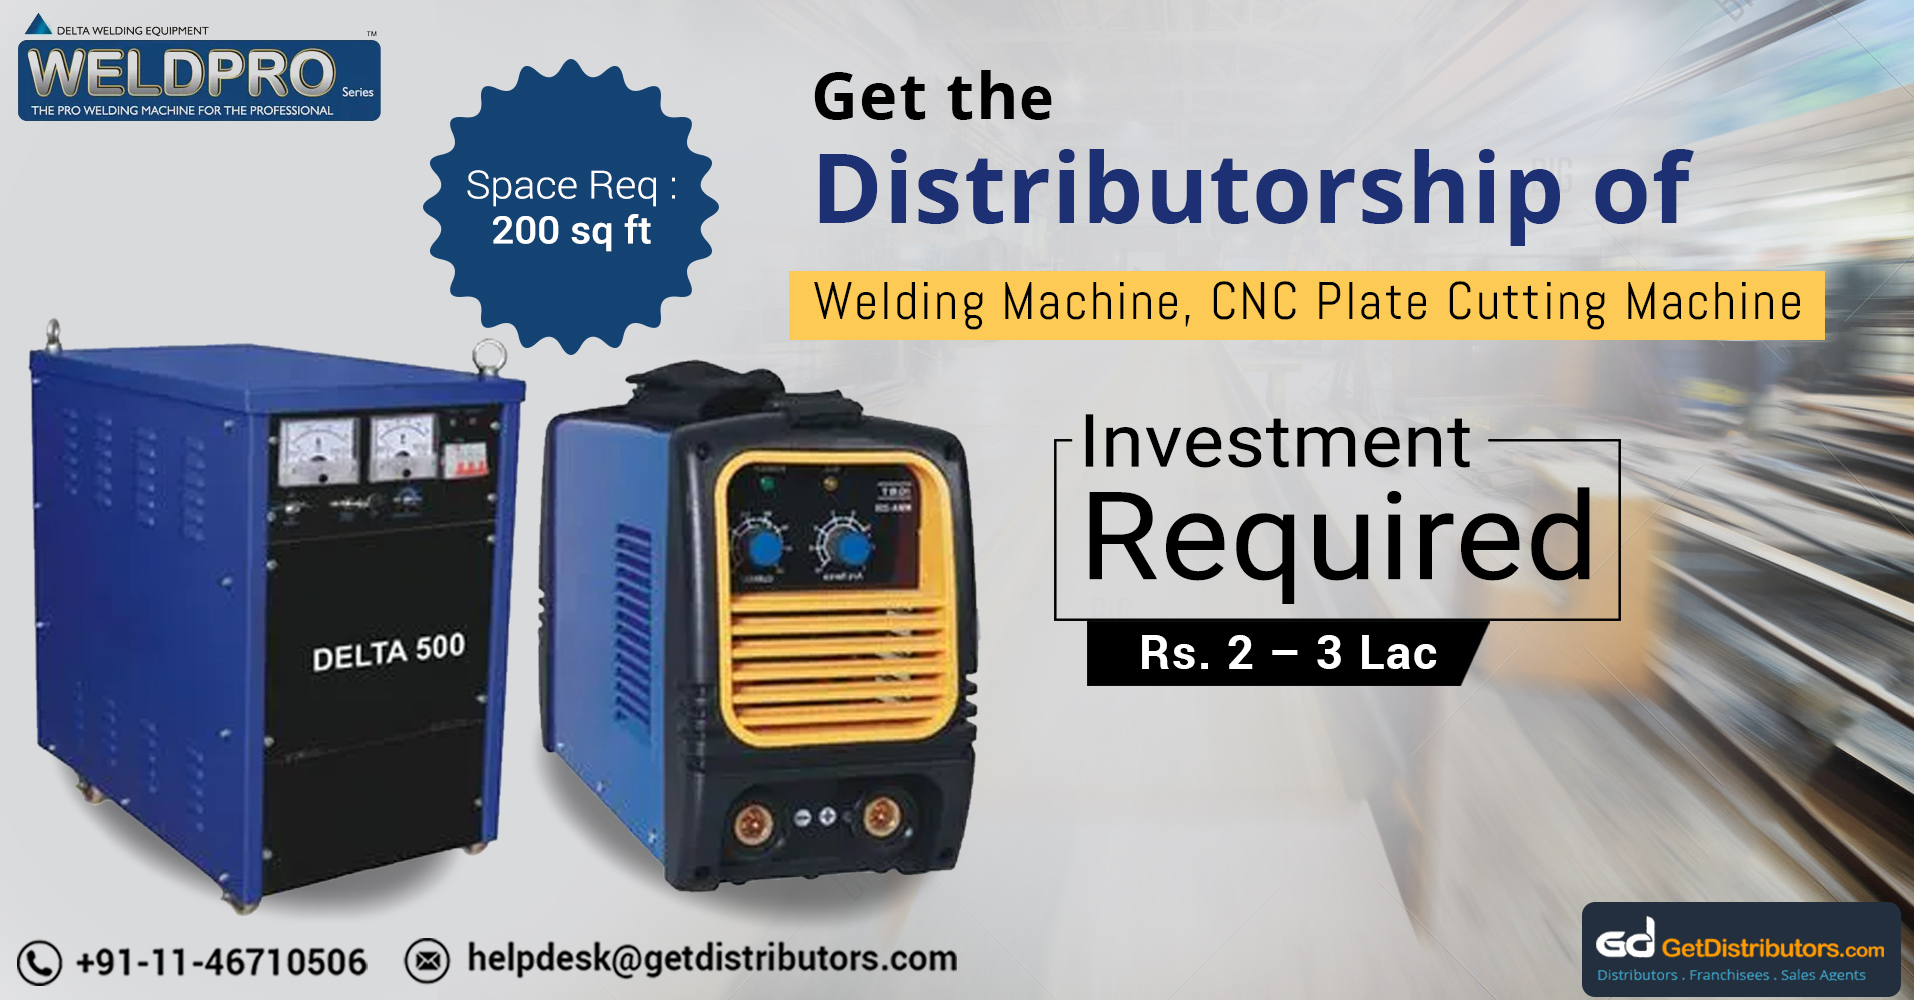 Distributorship Of High Tech Welding Machines And Related Machinery